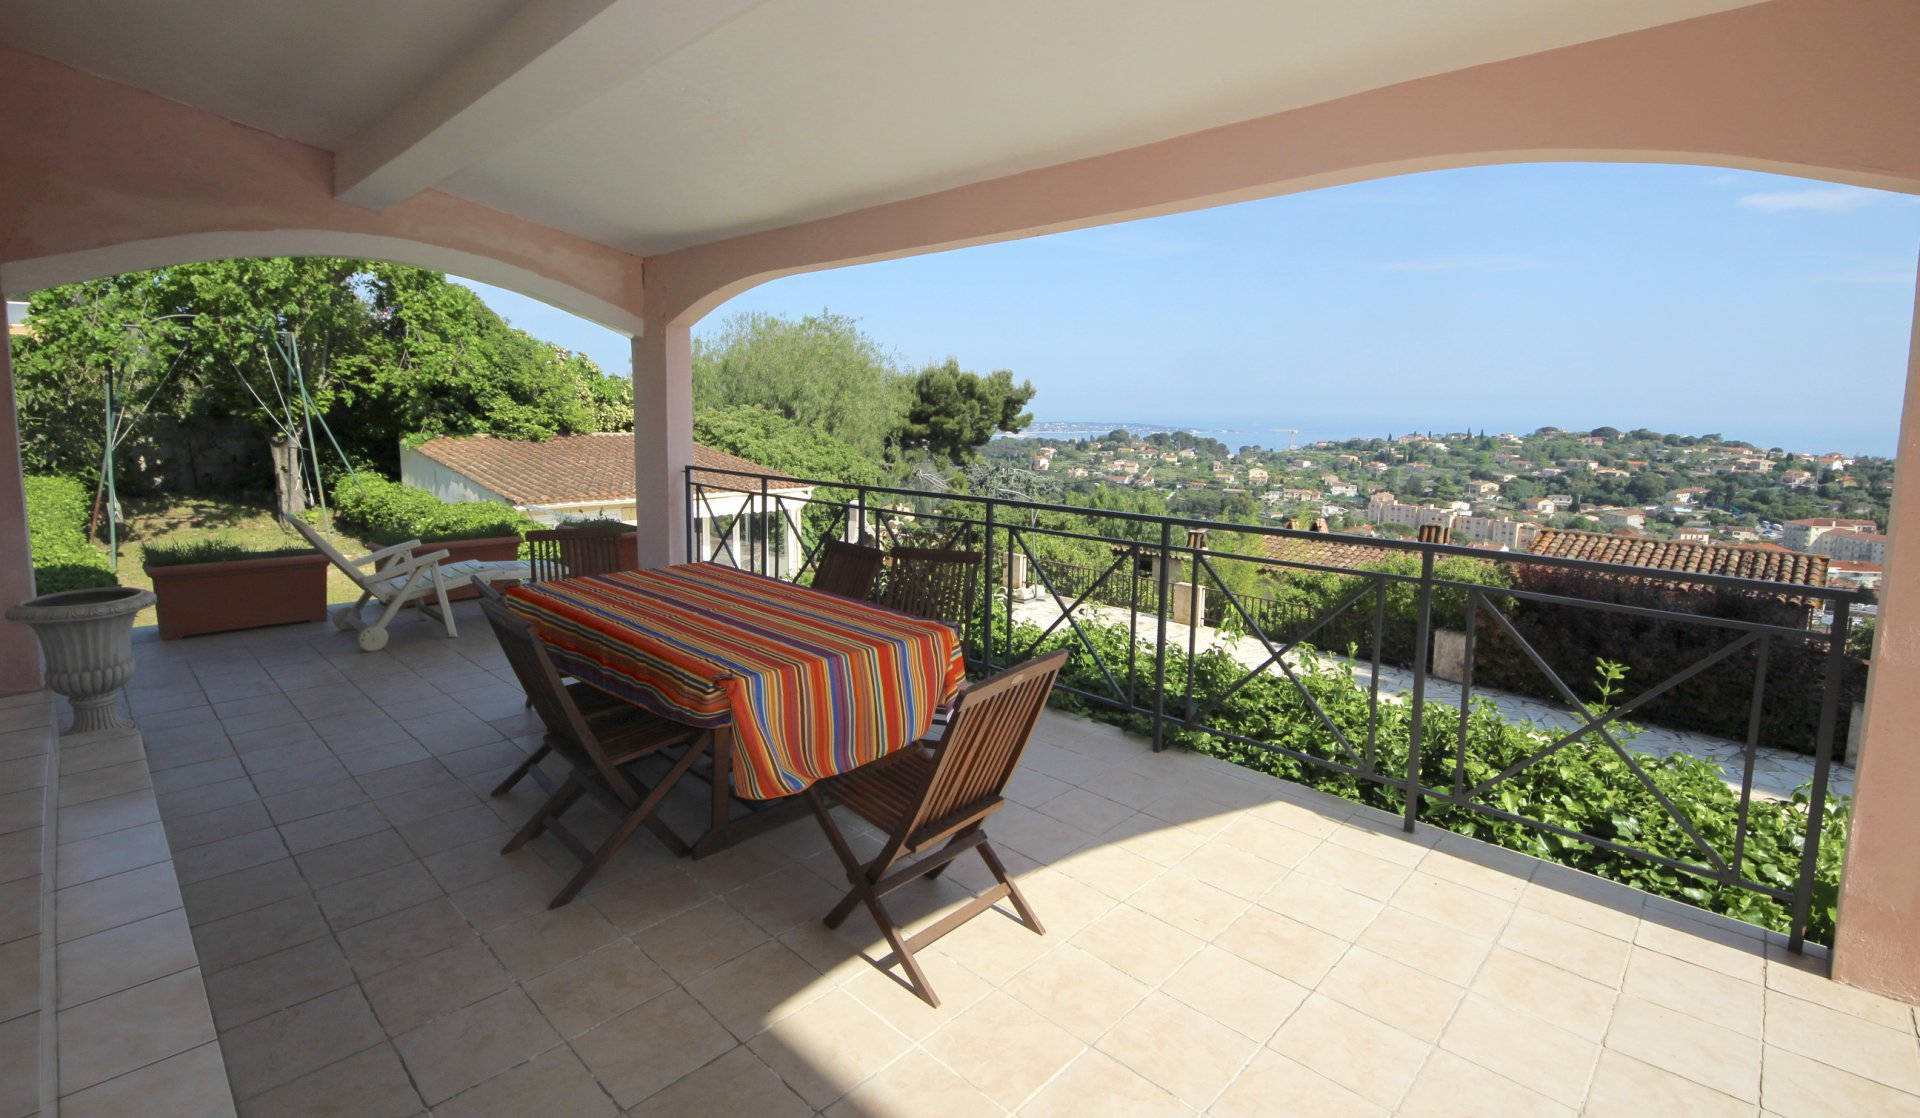 Vallauris Residential - Property 300m2 sea view with swimming pool and gatehouse